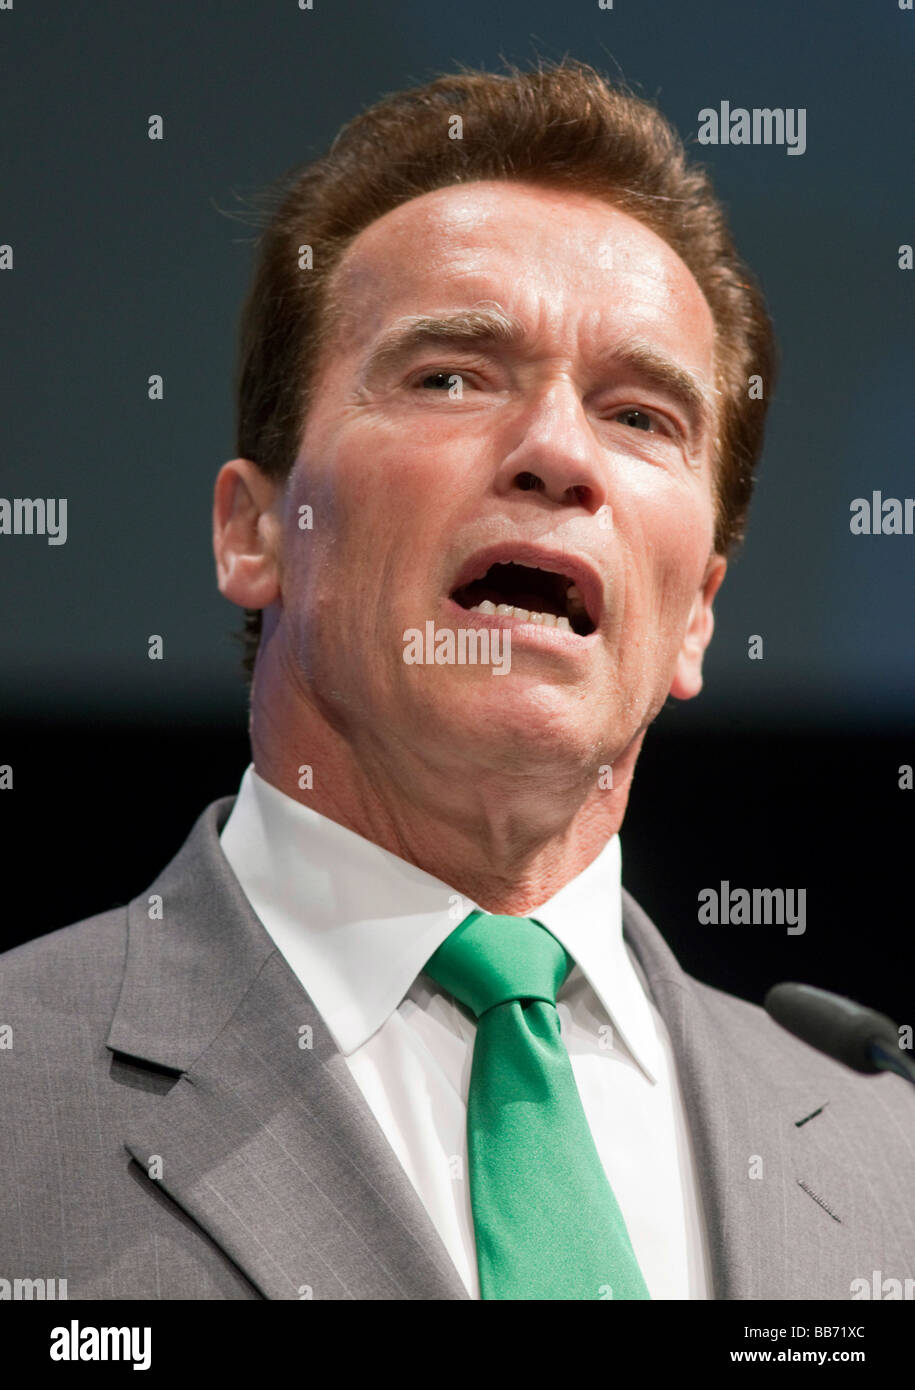 Arnold SCHWARZENEGGER Governor of the state of California - Stock Image